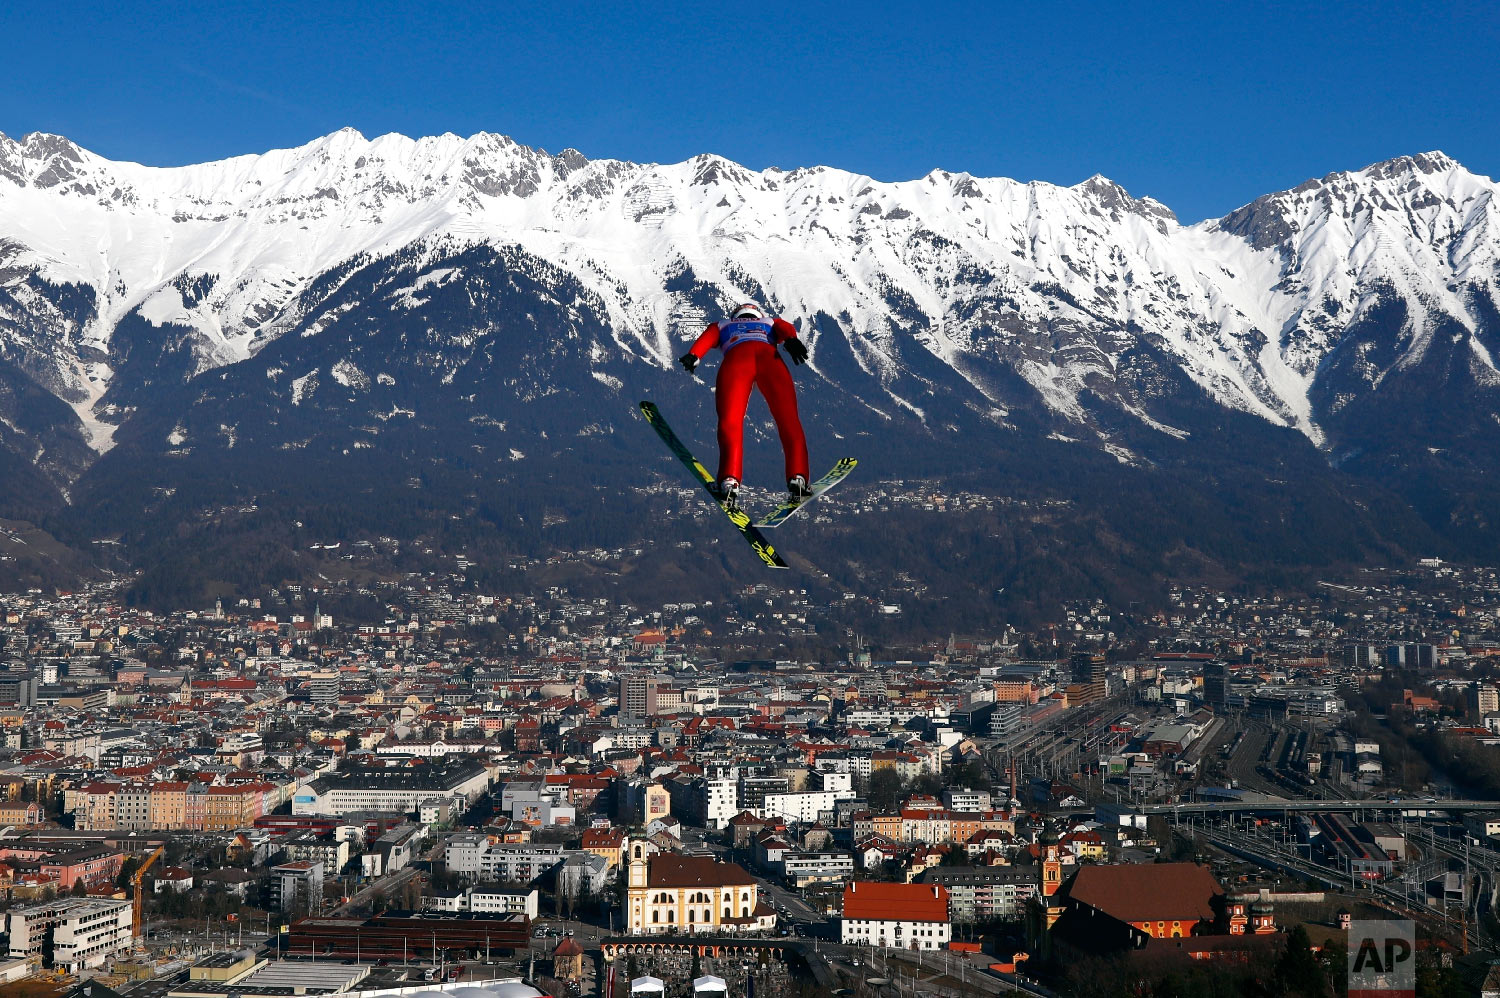 Russia's Viachelslav Barkov soars through the air during the Nordic Combined, Ski Jumping Team Sprint HS130 event, at the Nordic Ski World Championships in Innsbruck, Austria, Sunday, Feb. 24, 2019. (AP Photo/Matthias Schrader)